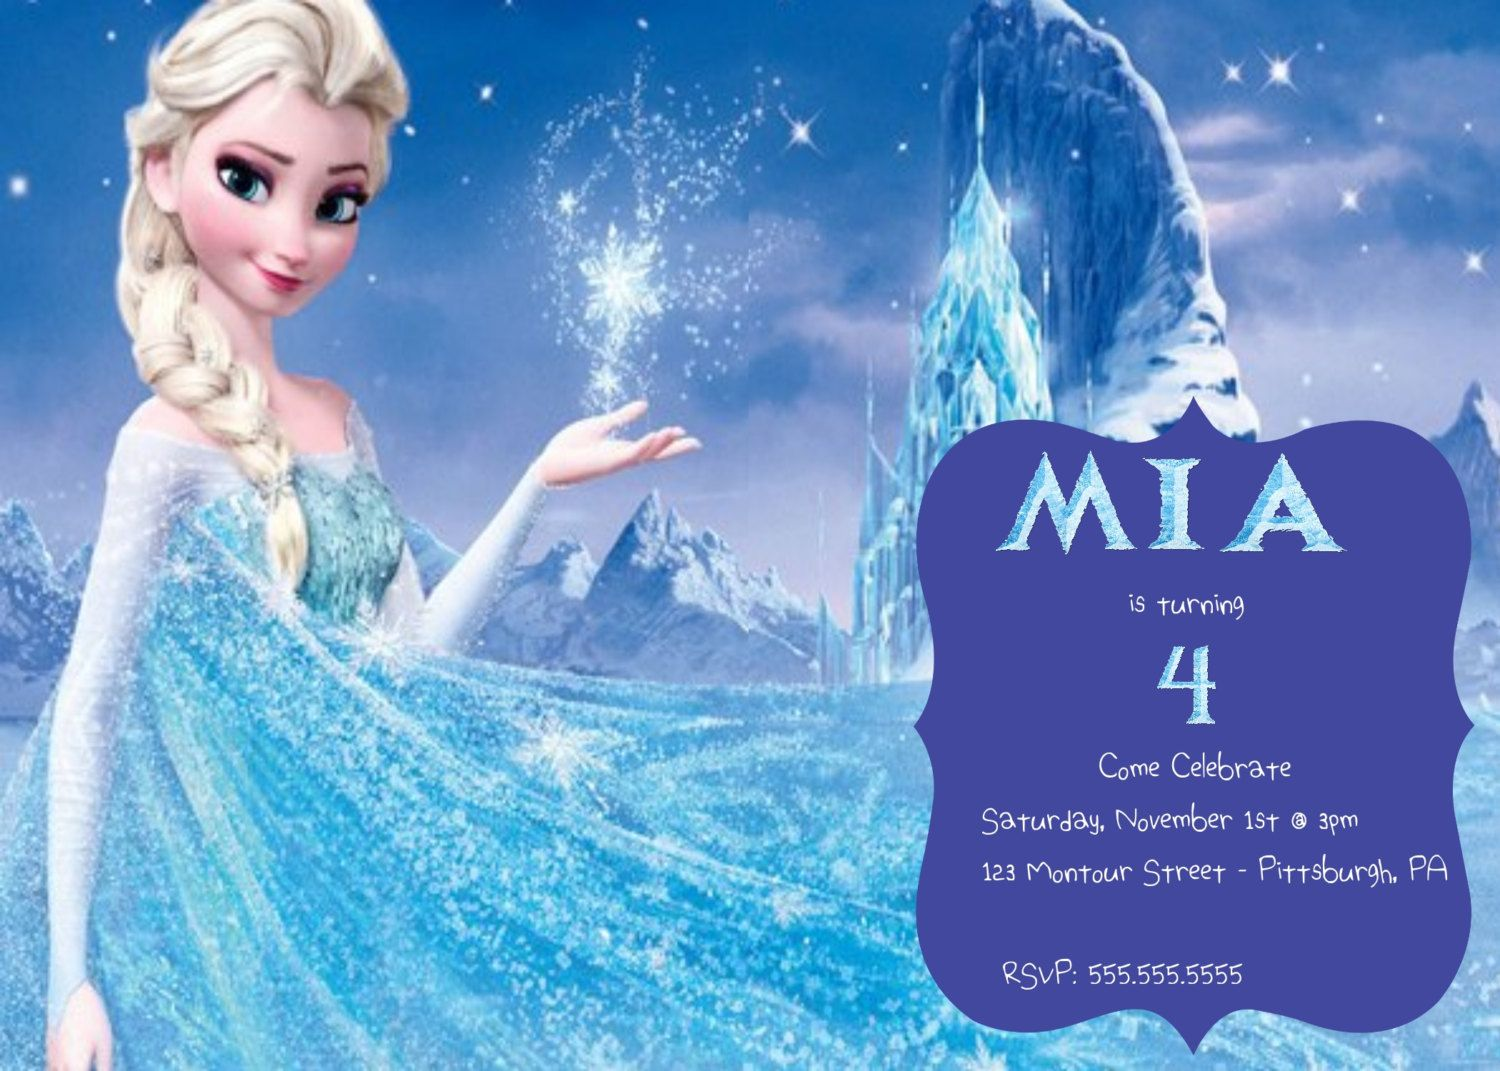 Frozen queen elsa birthday party invitation by miabbydesigns on etsy frozen queen elsa birthday party invitation by miabbydesigns on etsy filmwisefo Images